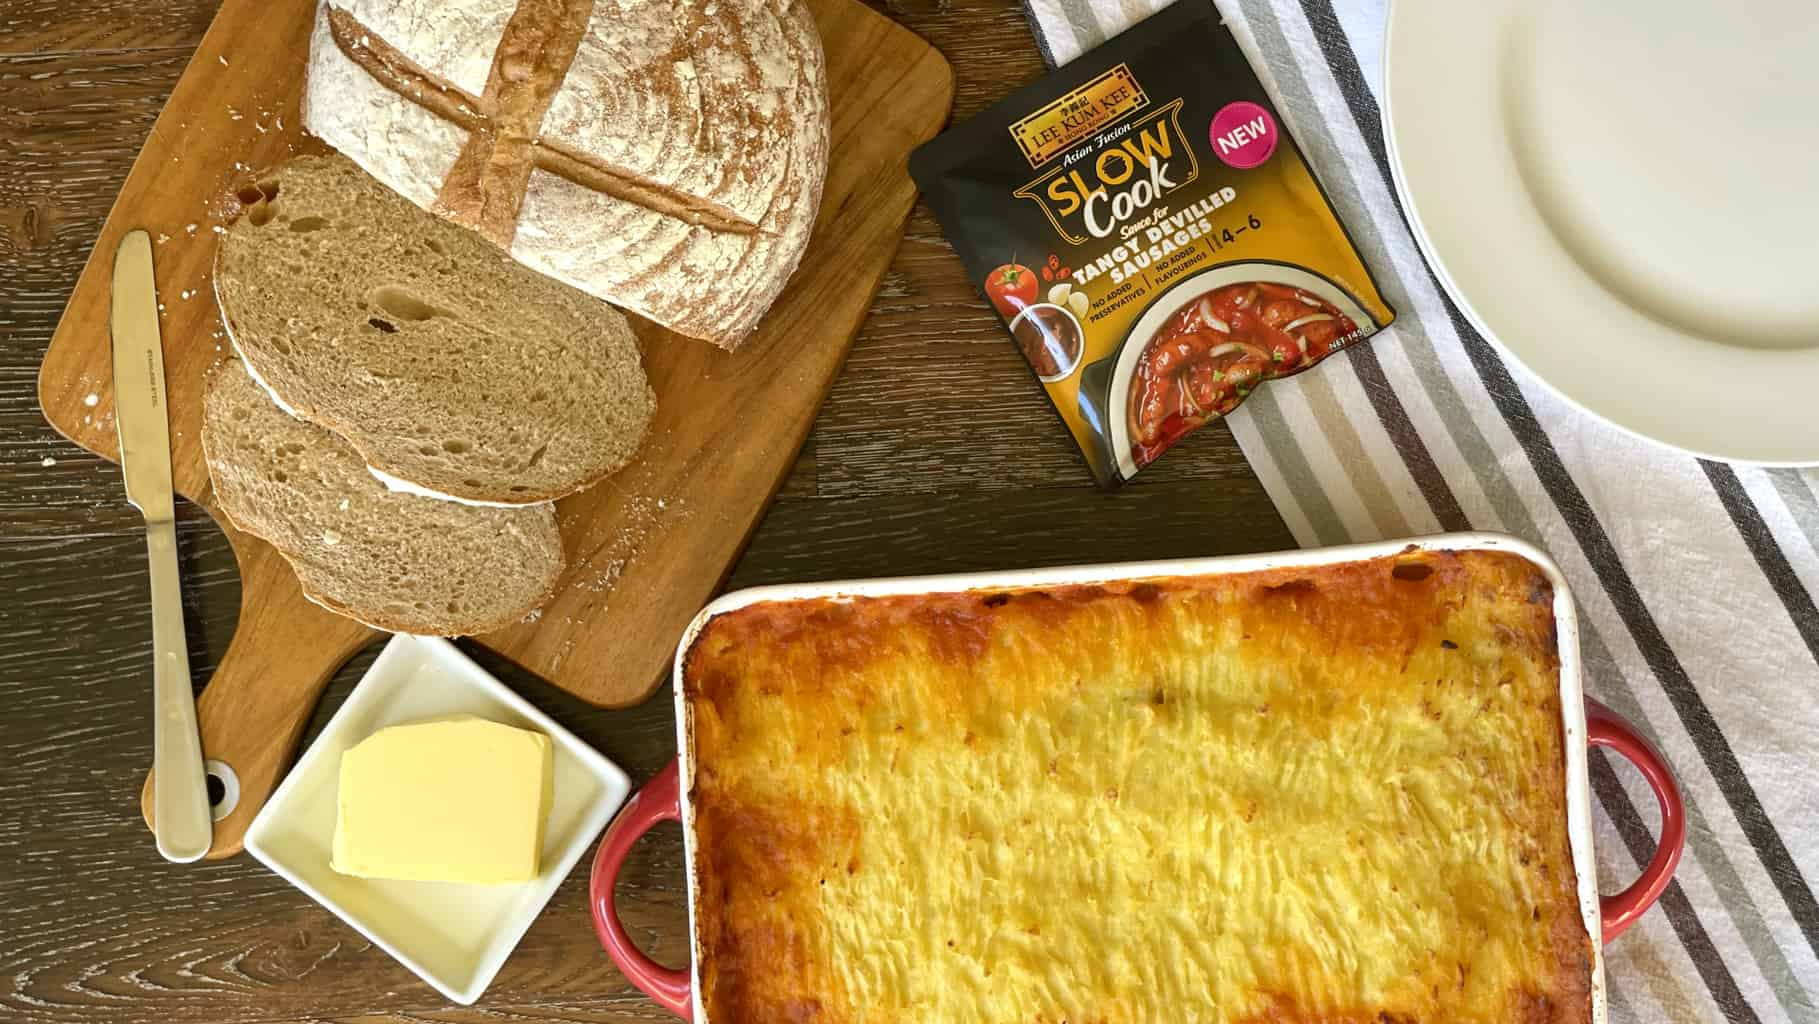 Overhead photograph of shepherds pie with loaf of bread and Lee Kum Kee Slow Cook Ready Sauce